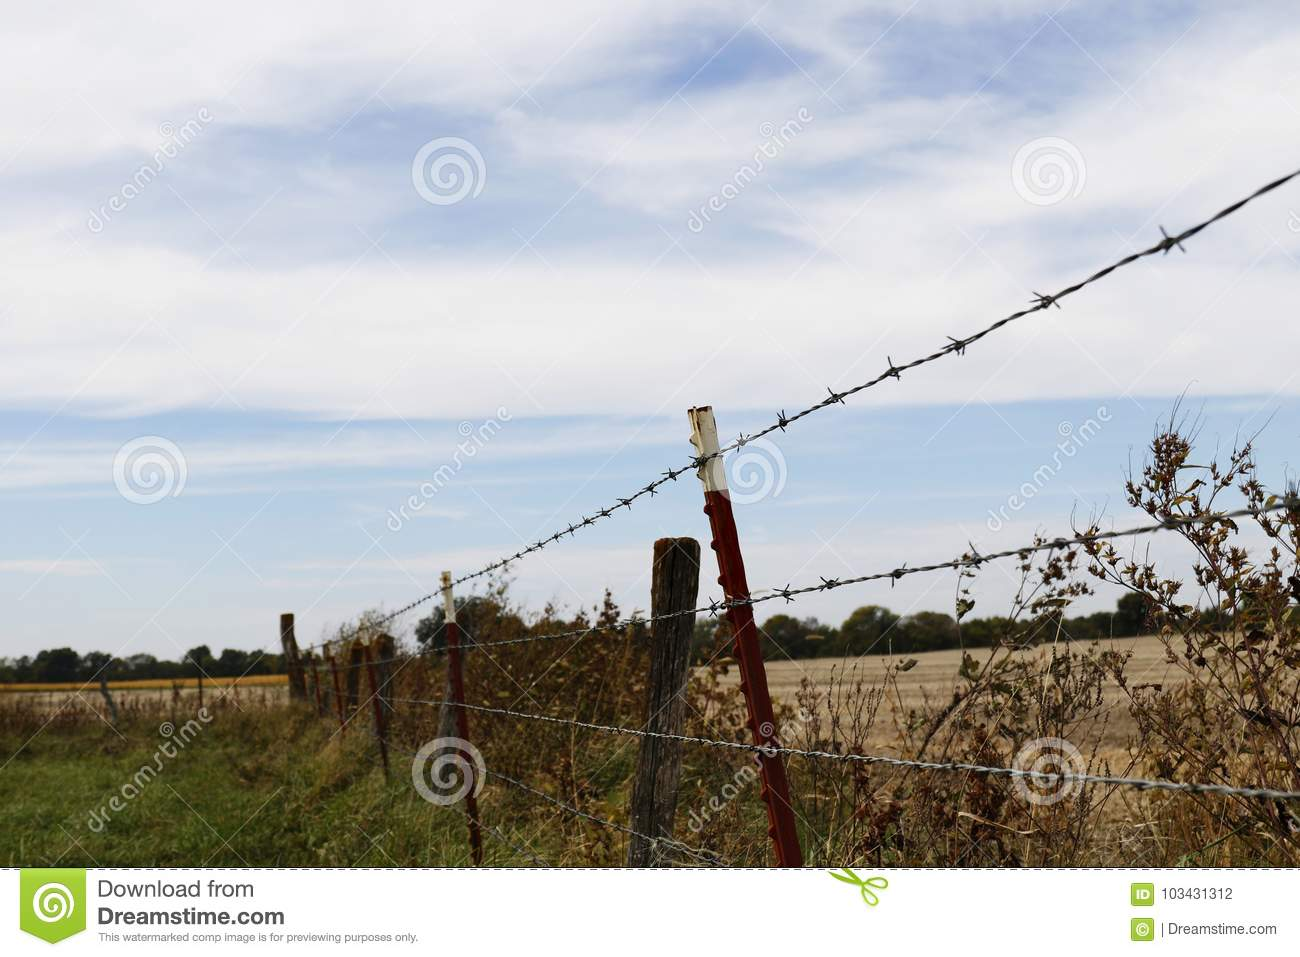 Barbed Wire Fence stock photo. Image of pasture, country - 103431312